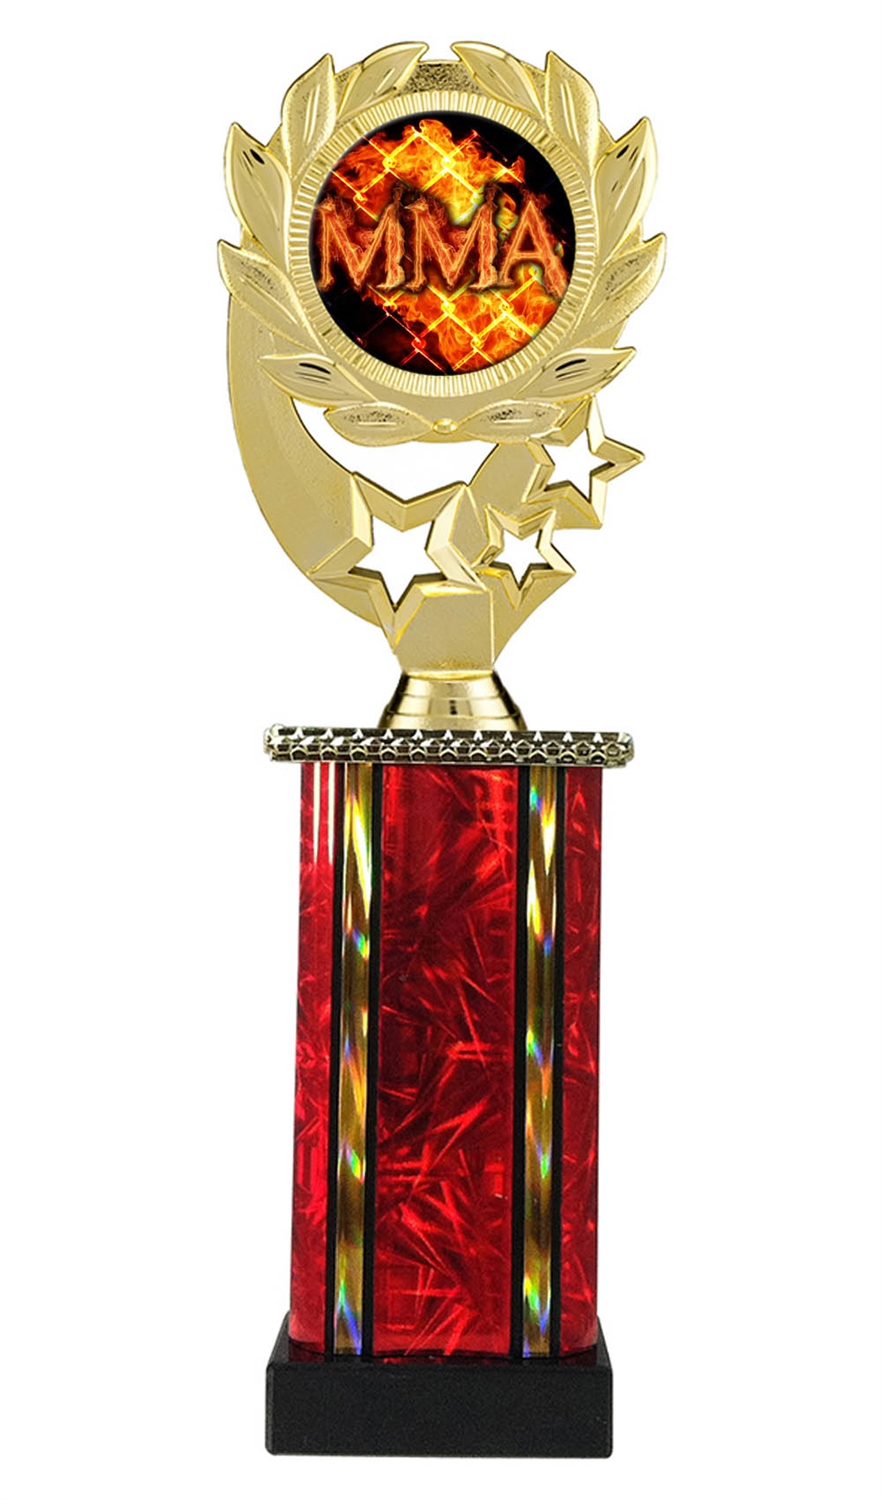 Moonbeam Wreath MLM MMA Trophy in 11 Colors - in 3 Sizes